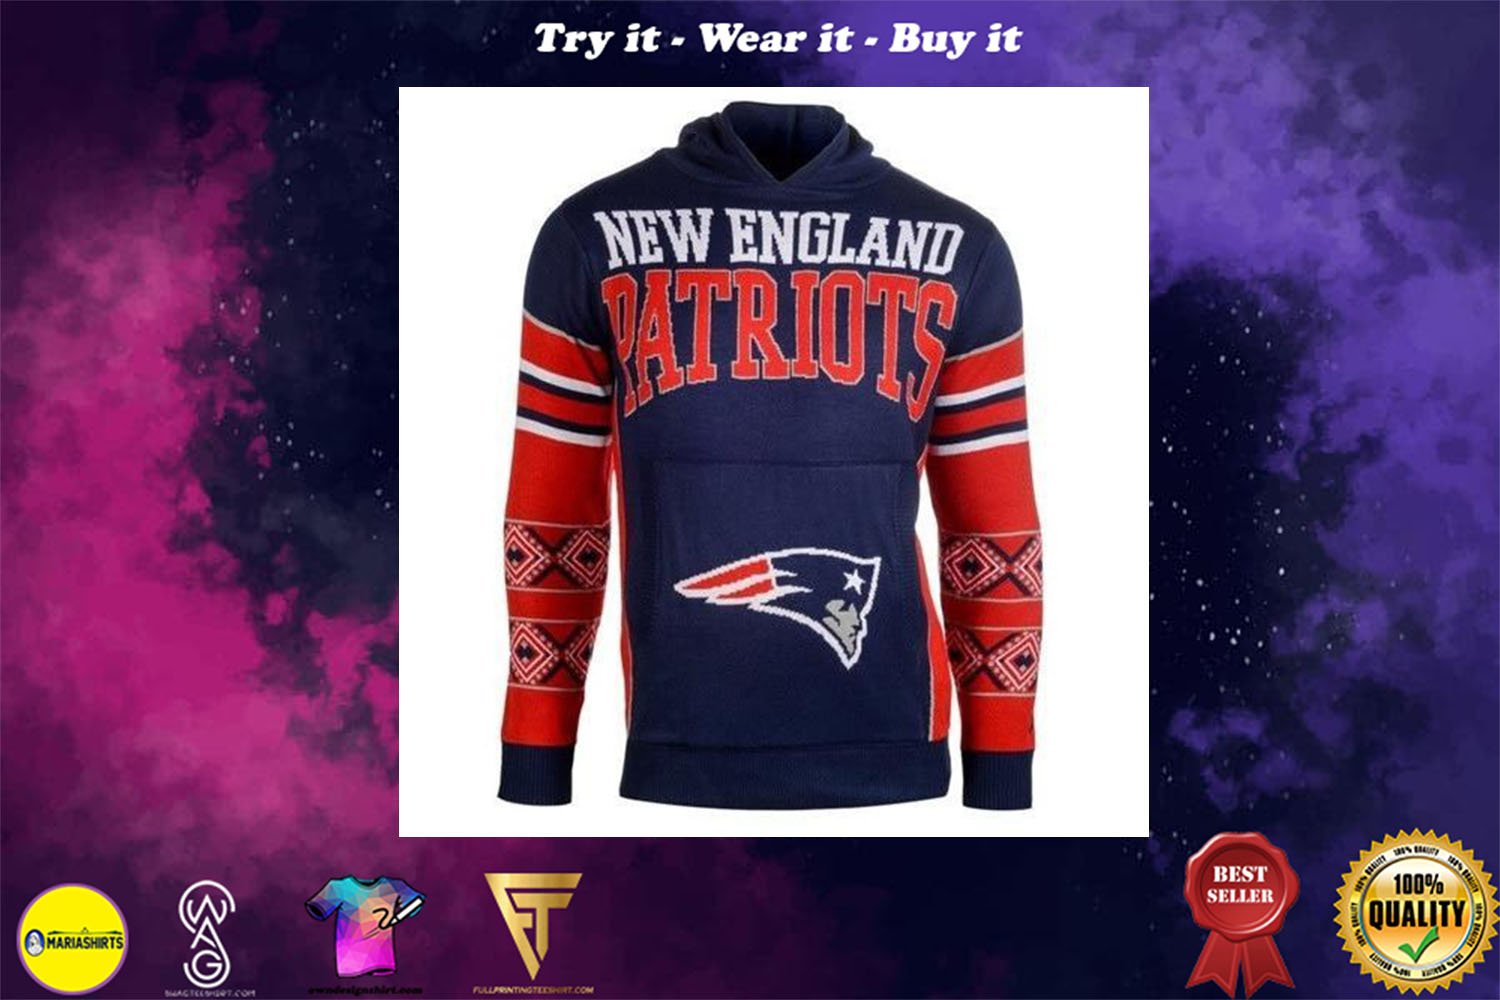 [special edition] the new england patriots nfl full over print shirt - maria